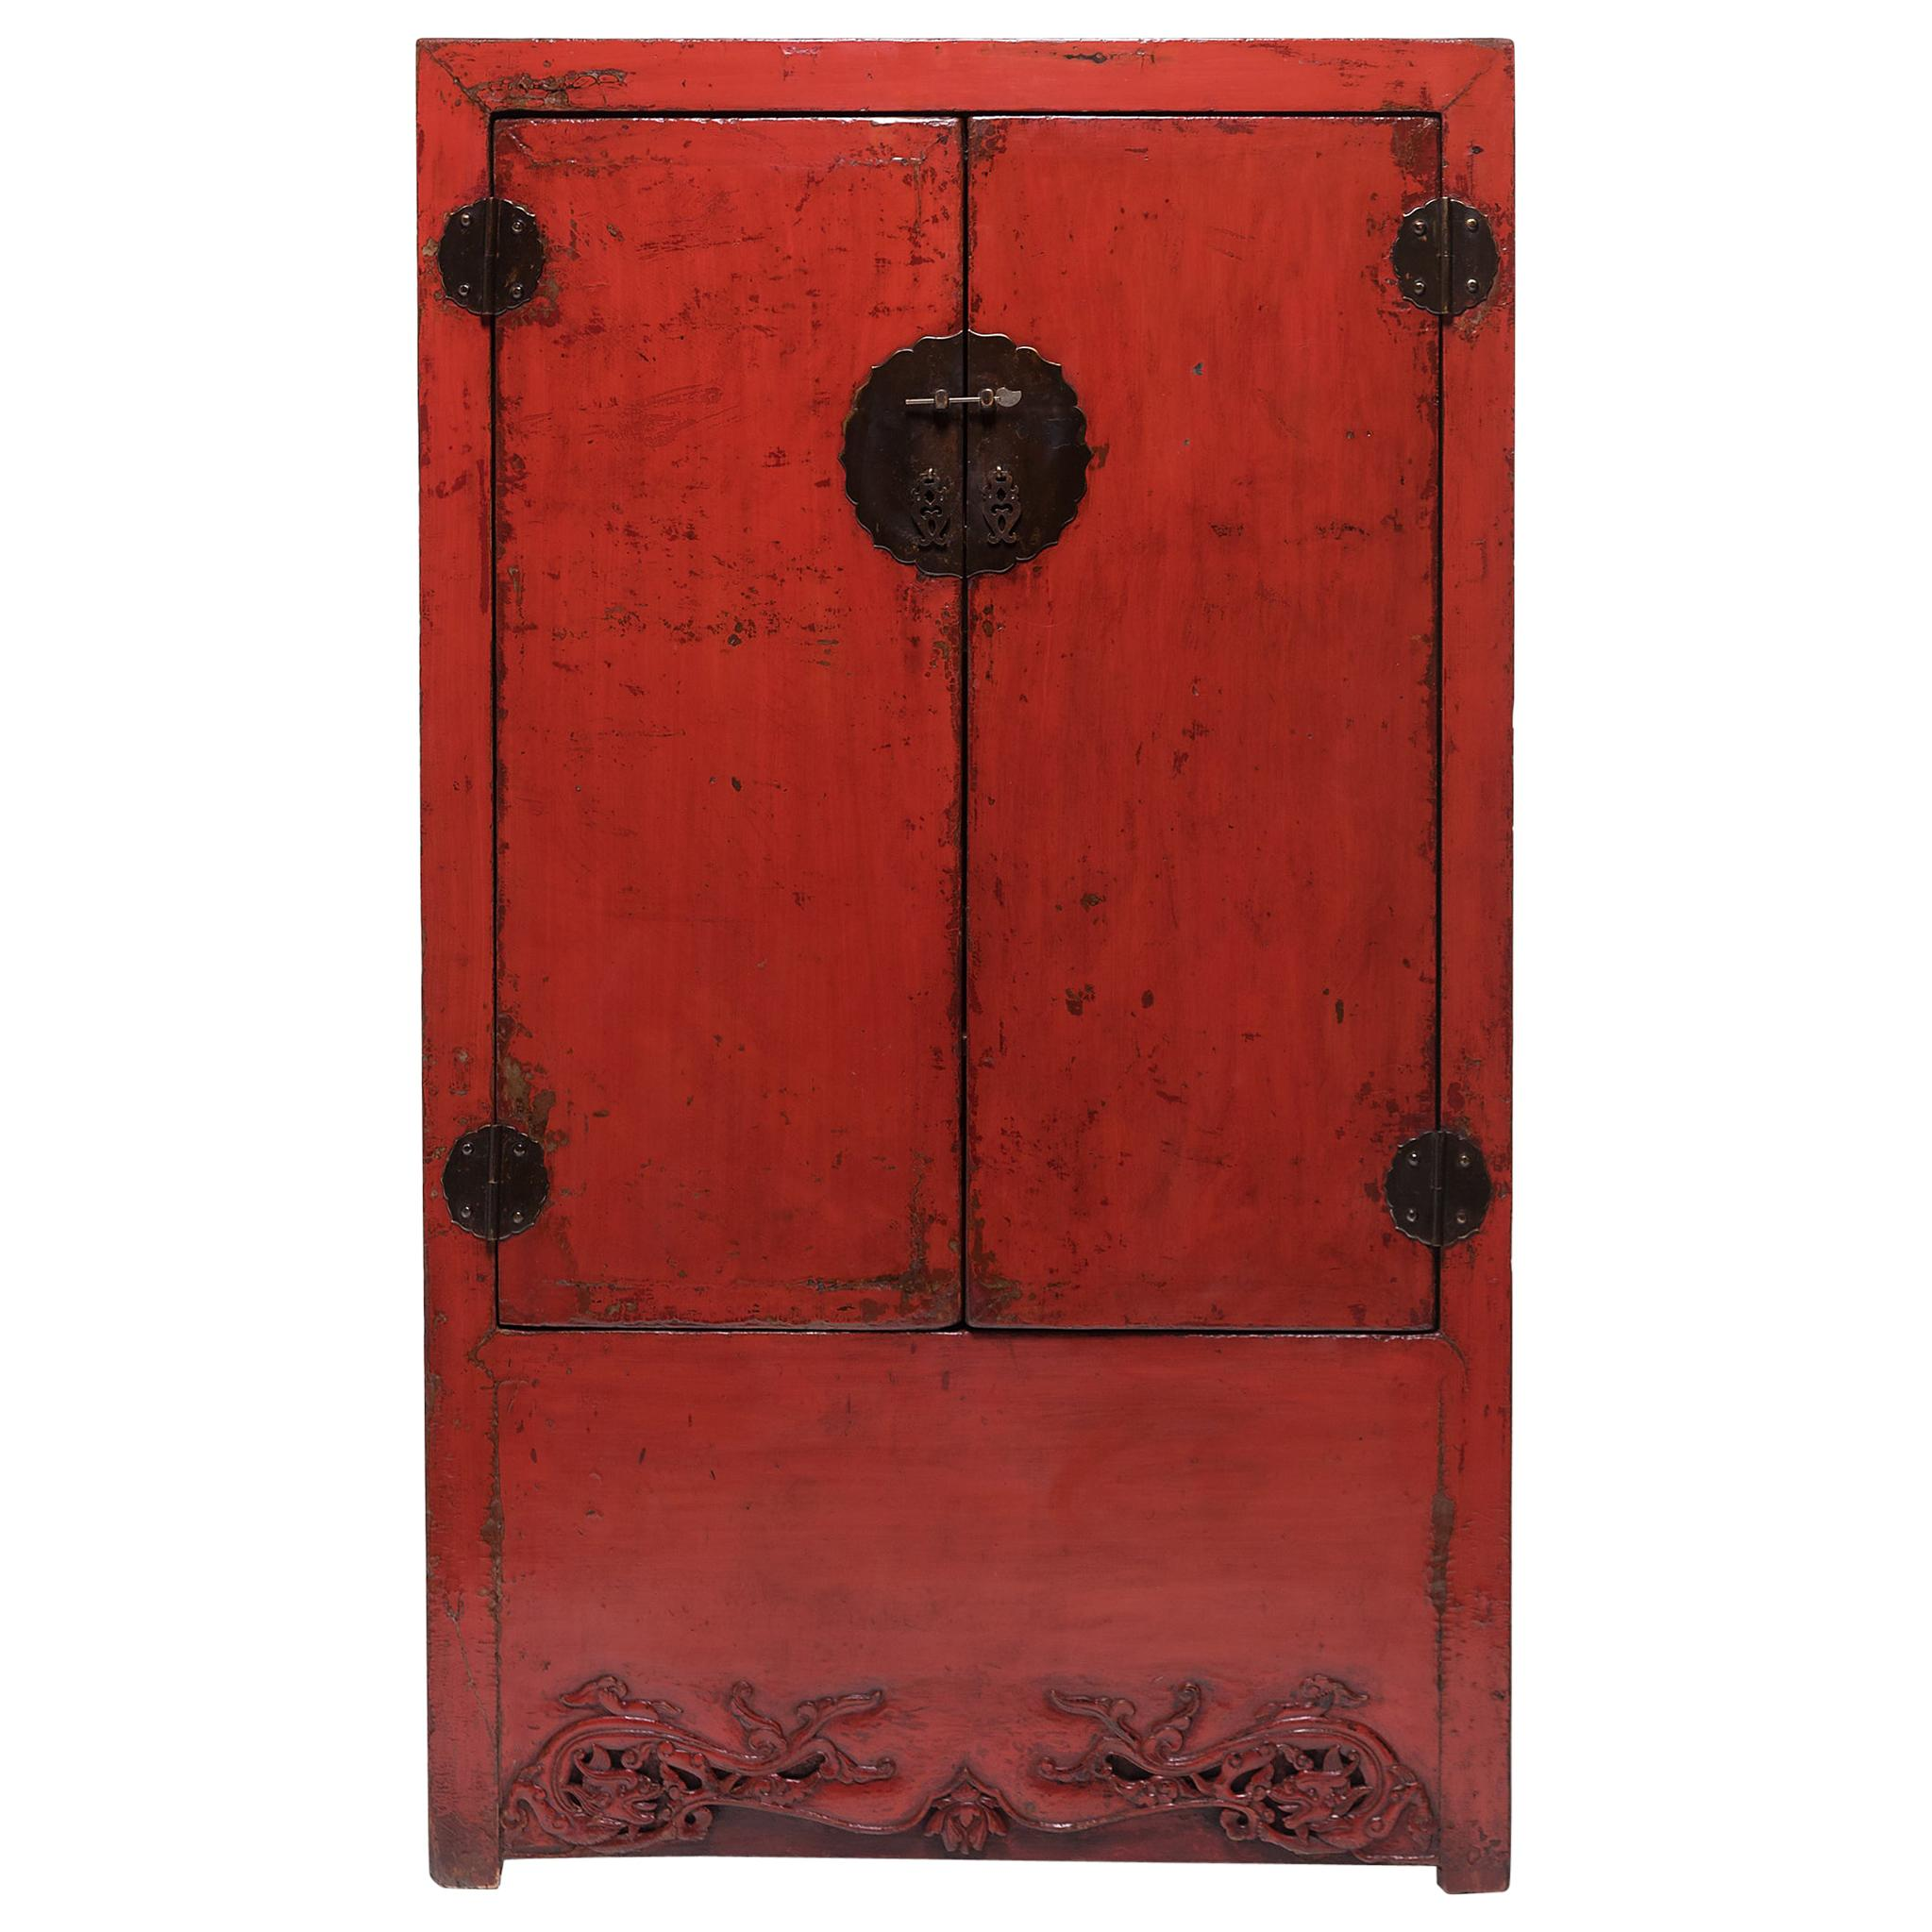 Chinese Red Lacquer Cabinet, c. 1850